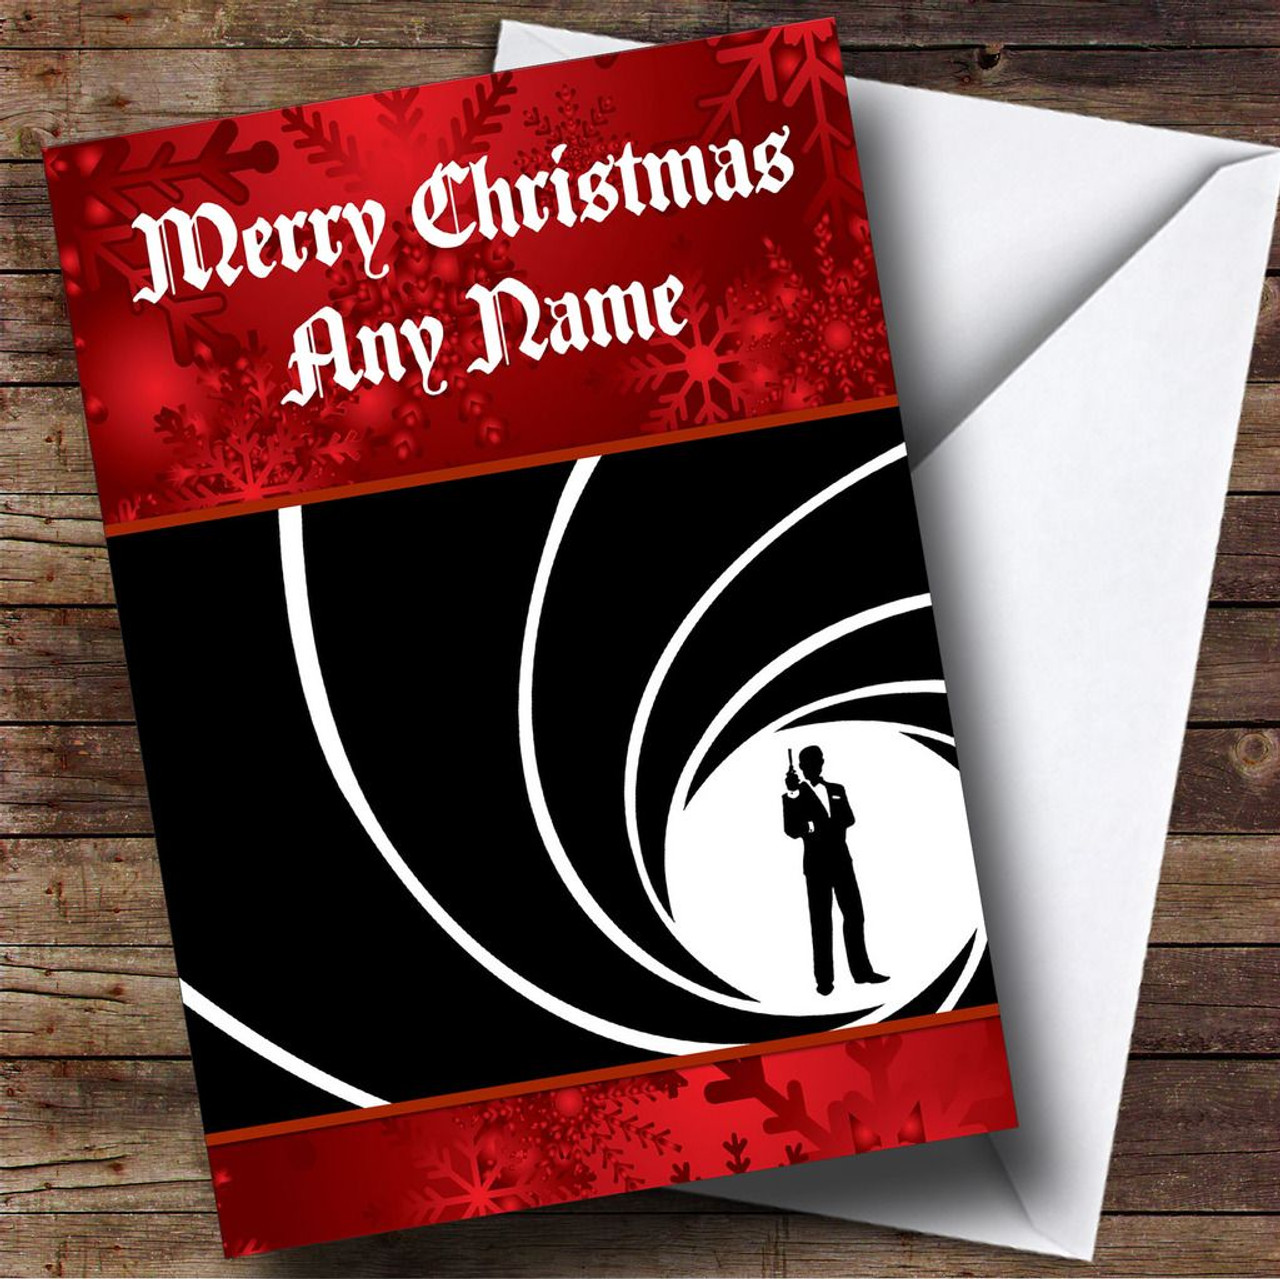 James bond personalised christmas card the card zoo james bond personalised christmas card kristyandbryce Image collections